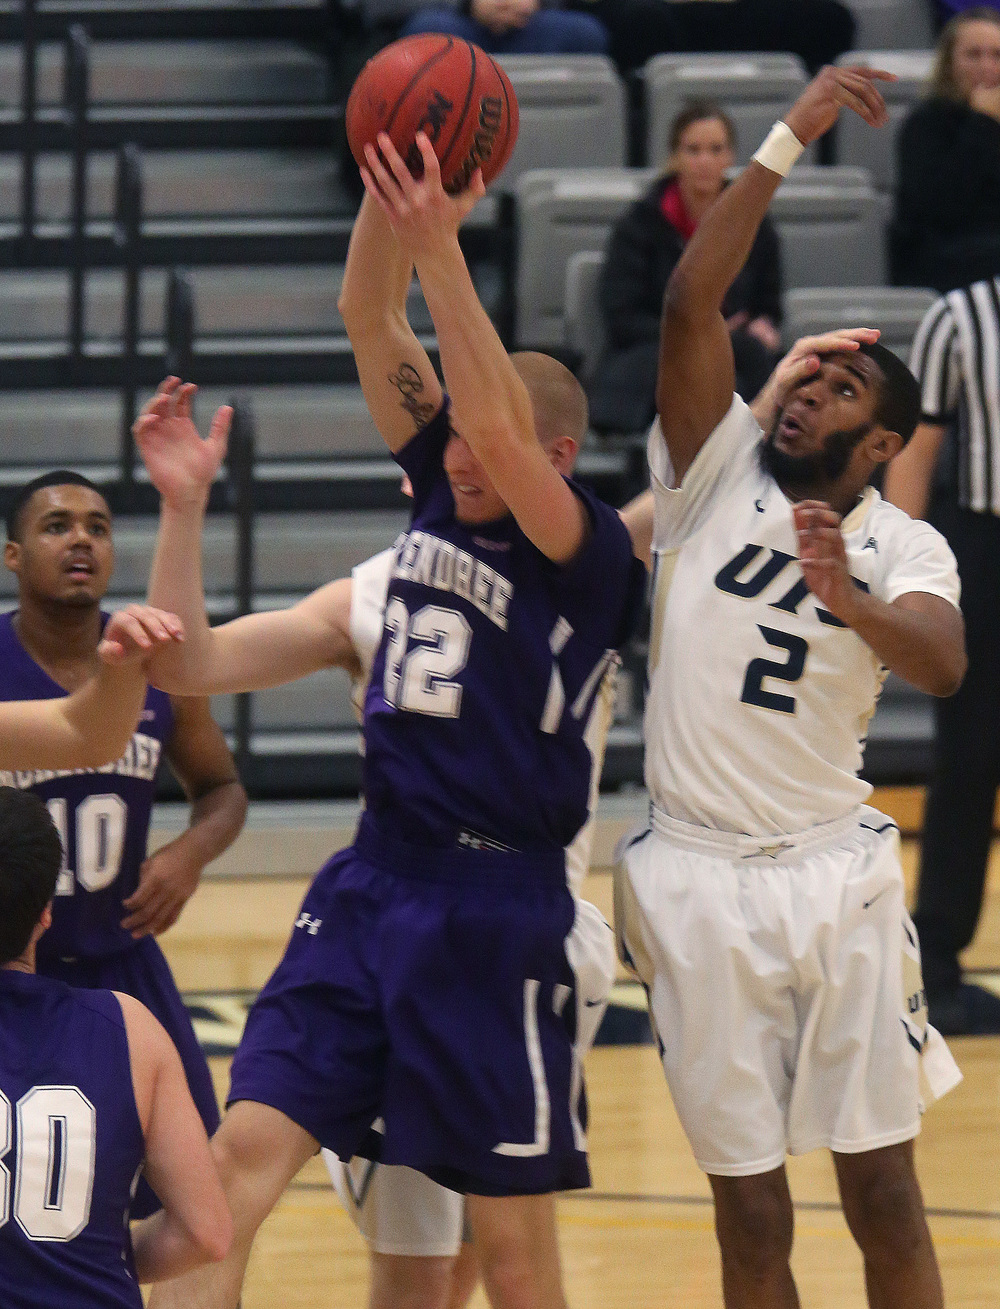 McKendree player Nate Michael grabs a rebound while UIS player Davi Austin gets an inadvertent hand to his face by teammate Paxton Harmon during the first half. David Spencer/The State Journal Register